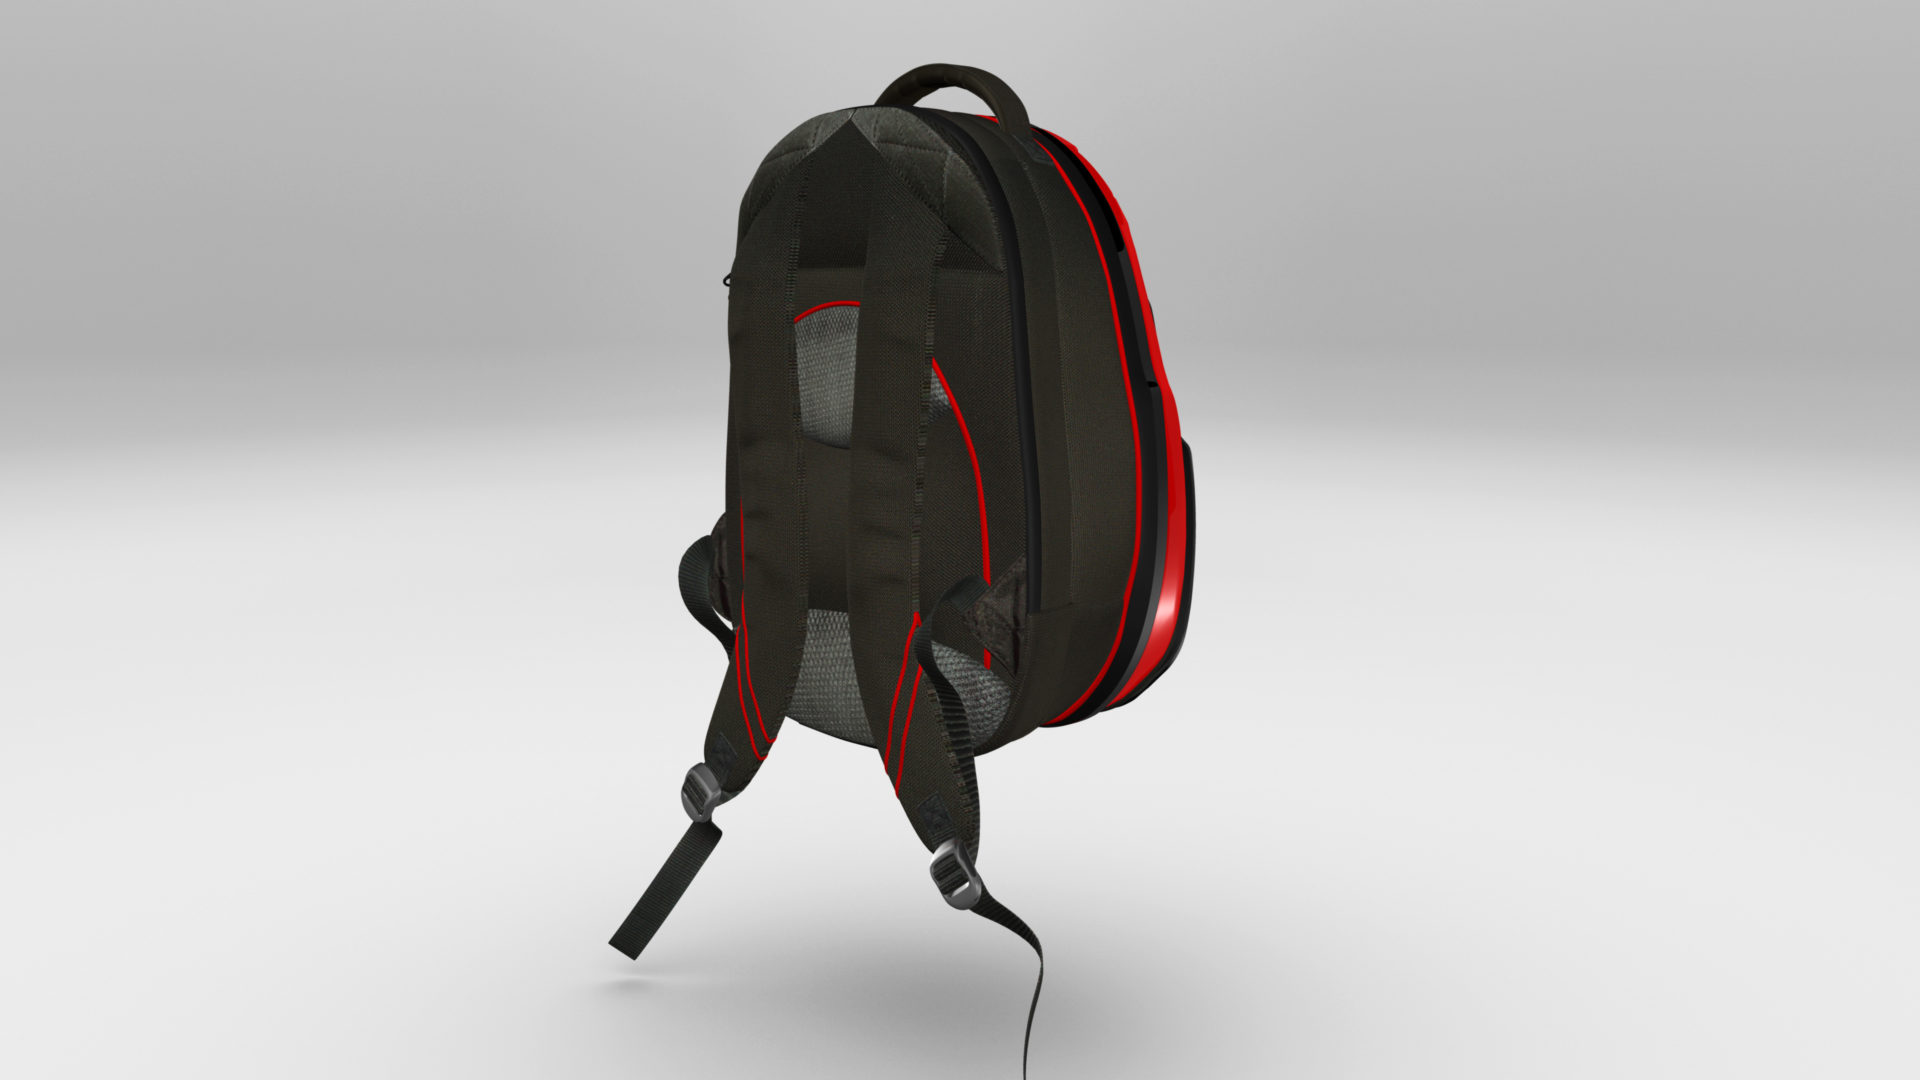 backpack 01 3d model max fbx ma mb obj 286041